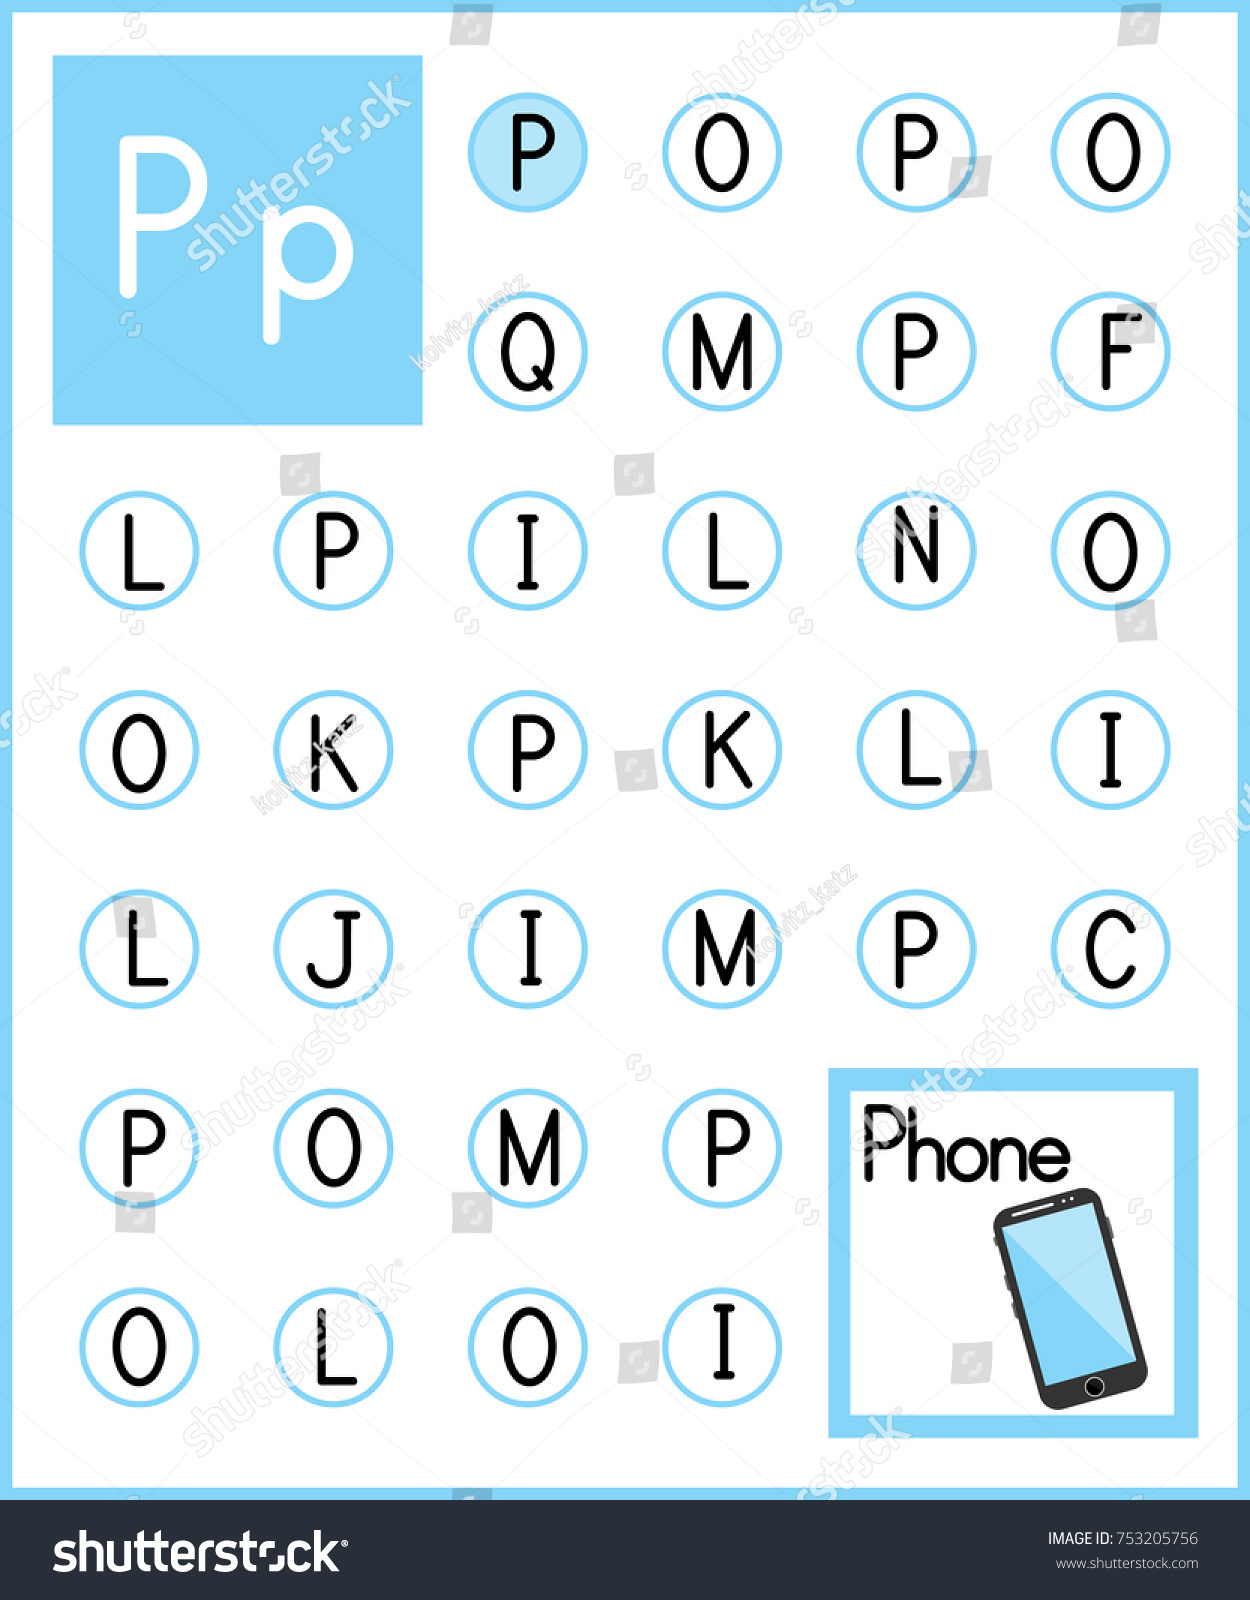 Worksheet Alphabet Activity Pre Schoolers Kindergarten